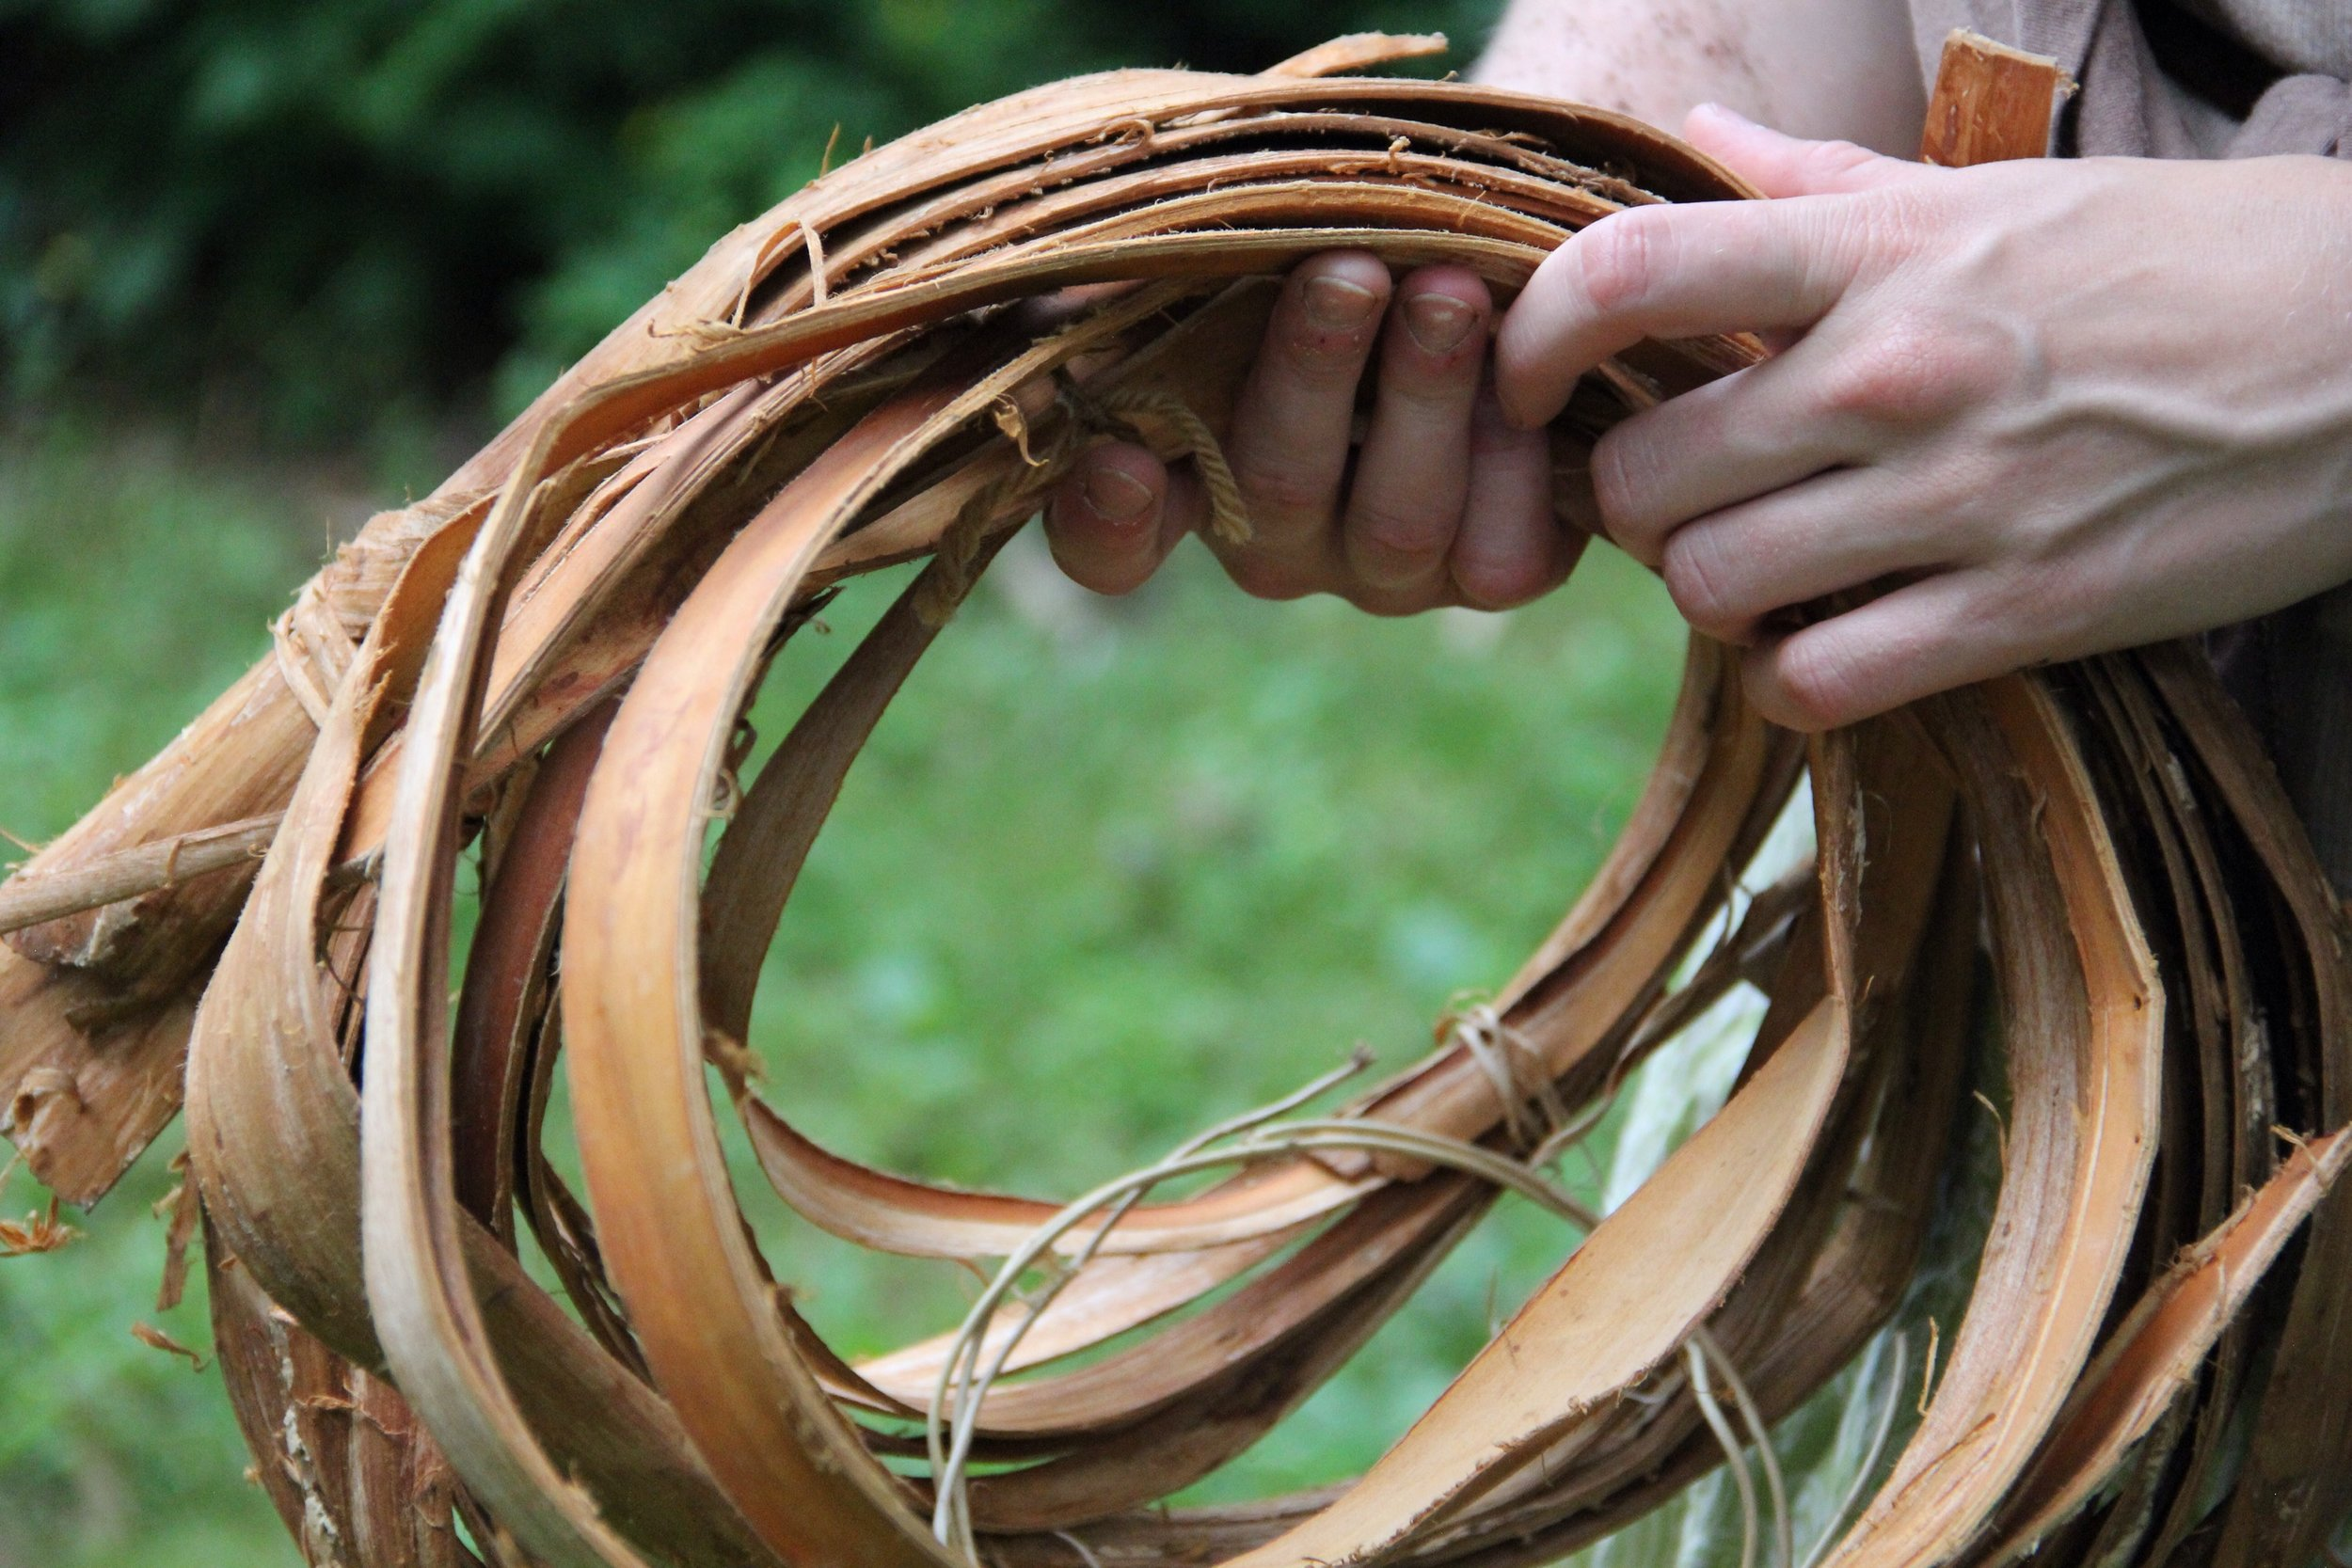 KATIE GROVE BASKETS - Going out into the forests and fields, harvesting materials from nature, and sitting down in the sun to weave a basket is Katie's idea of a perfect day! As an artist her passion is to create art with all natural materials that she harvests and prepares from the beautiful landscape around her home. As an educator, she guides adults and children alike in connecting to their creative self through the combination of art and nature. With a background in Fibers Art from Tyler School of Art in Philadelphia and a BFA in Printmaking from SUNY New Paltz, Katie Grove currently exhibits work regionally in galleries and teaches nature and art workshops throughout the Hudson Valley.